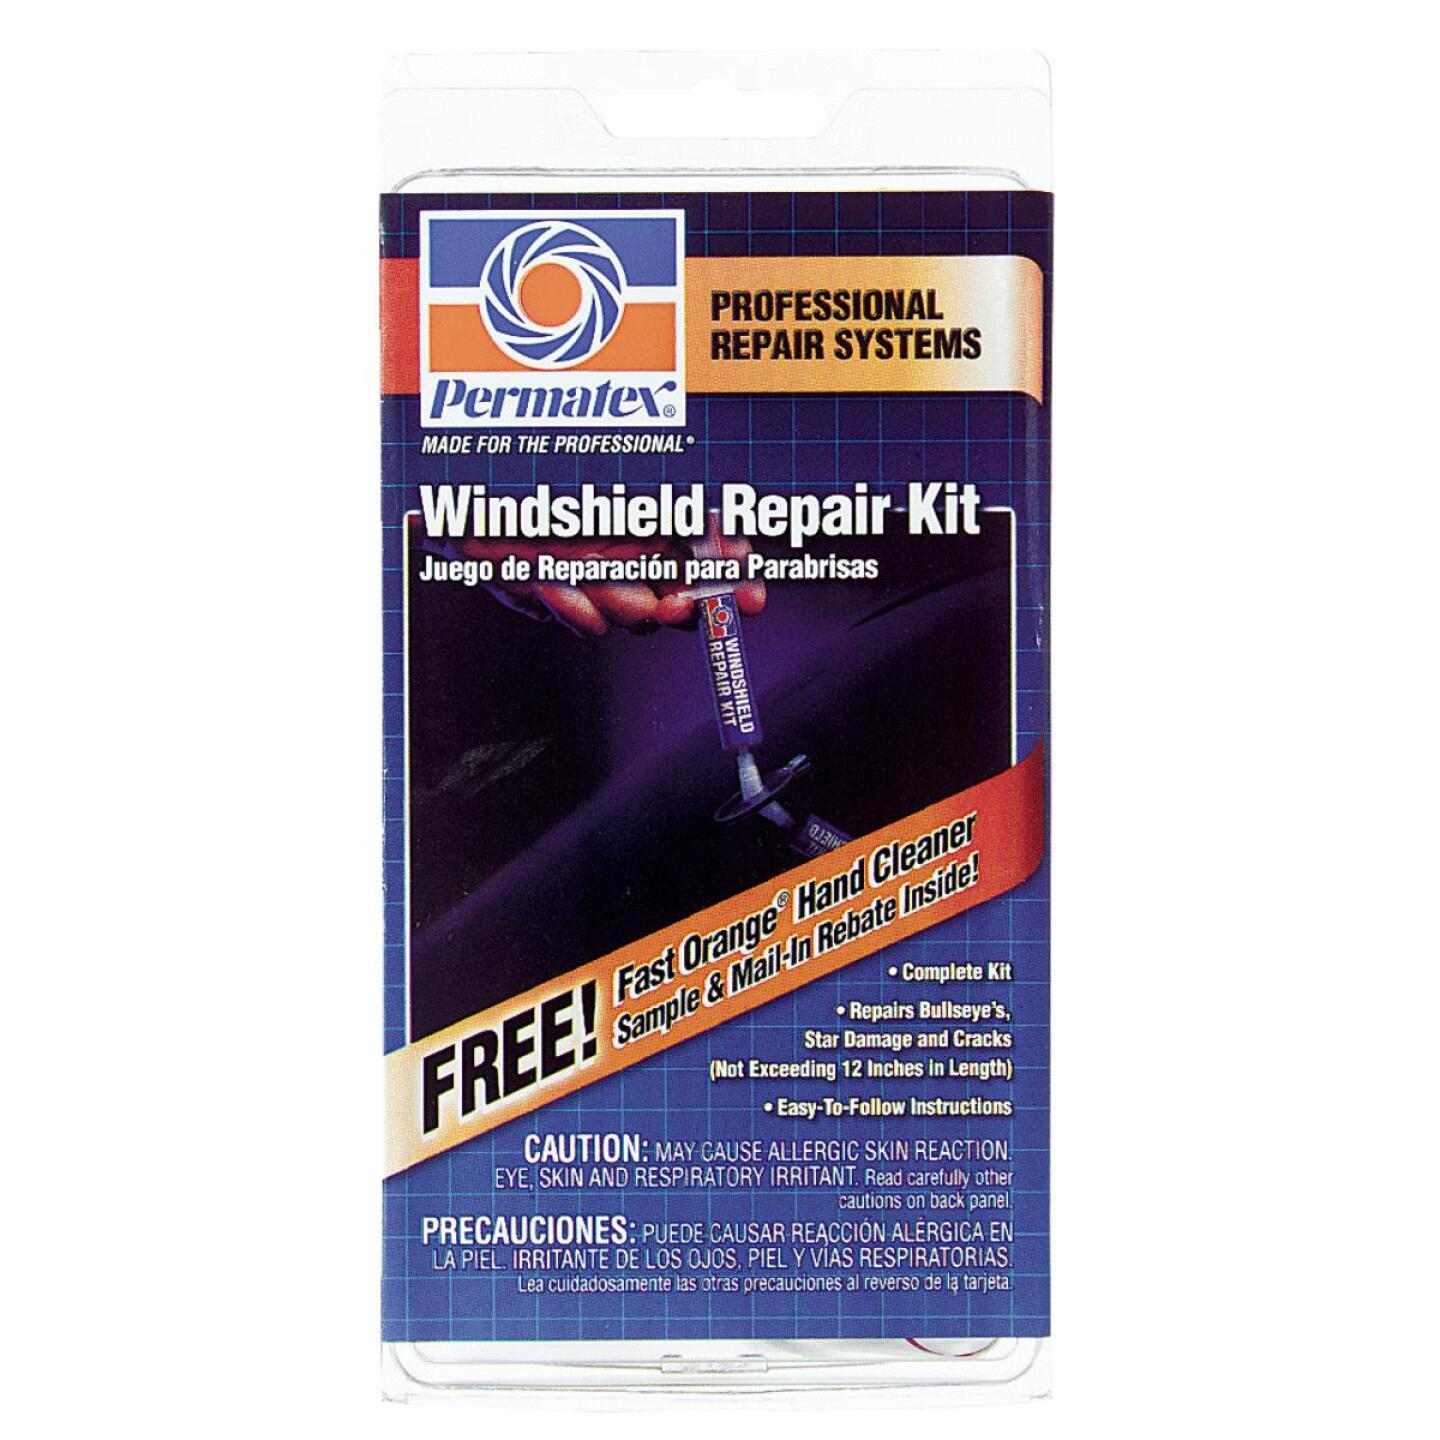 PERMATEX Windshield Repair Kit Image 1